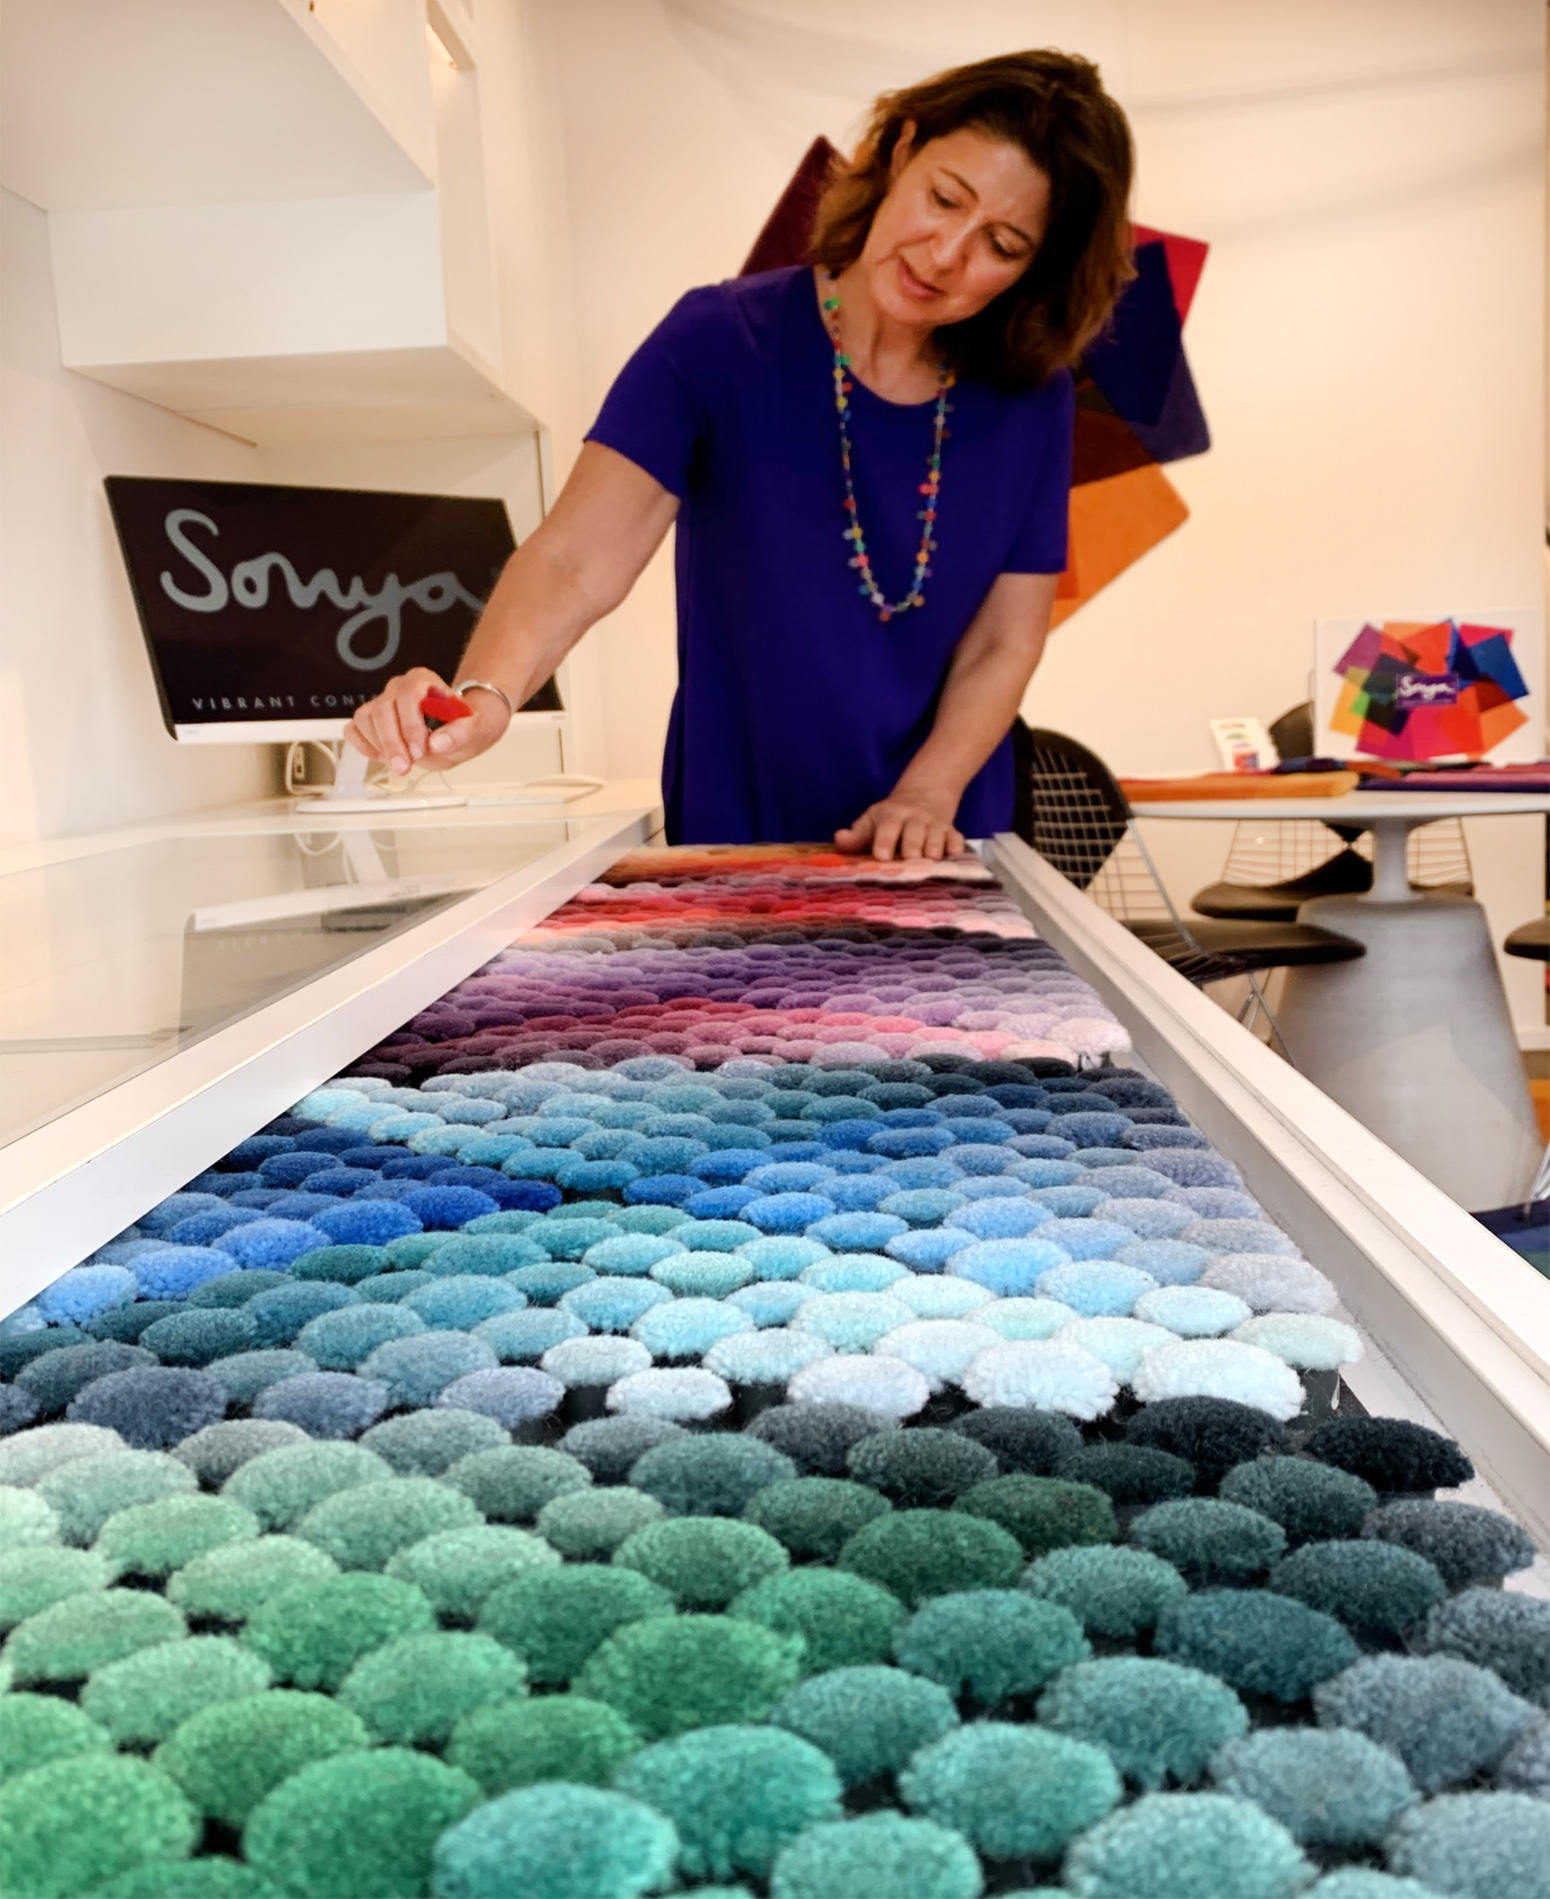 Sonya choosing rug colours in her London studio